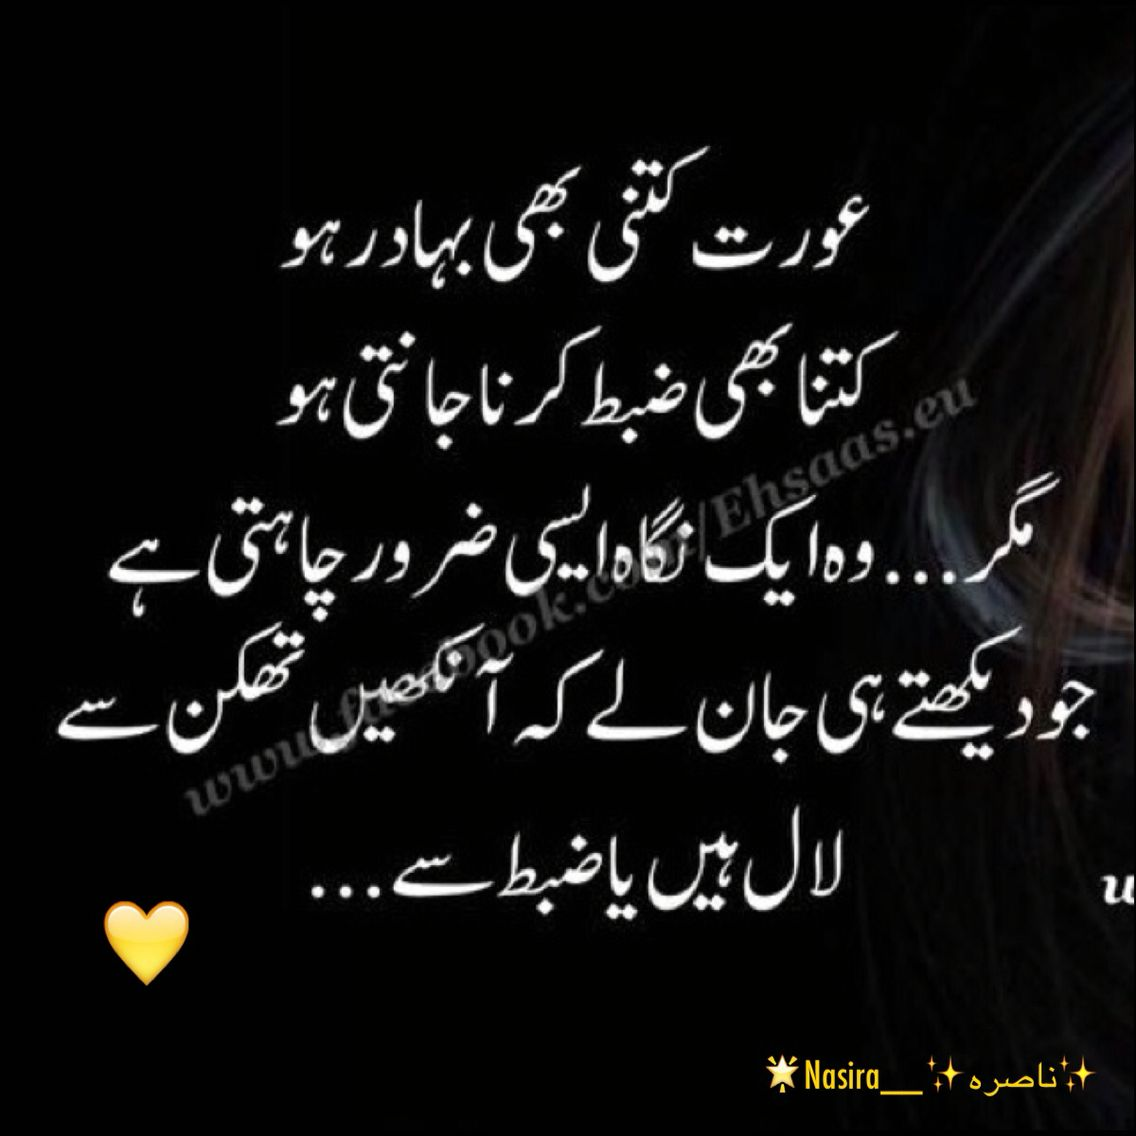 Pin by Nasira Ahmad on An URDU POETRY & quotes | Poetry ...